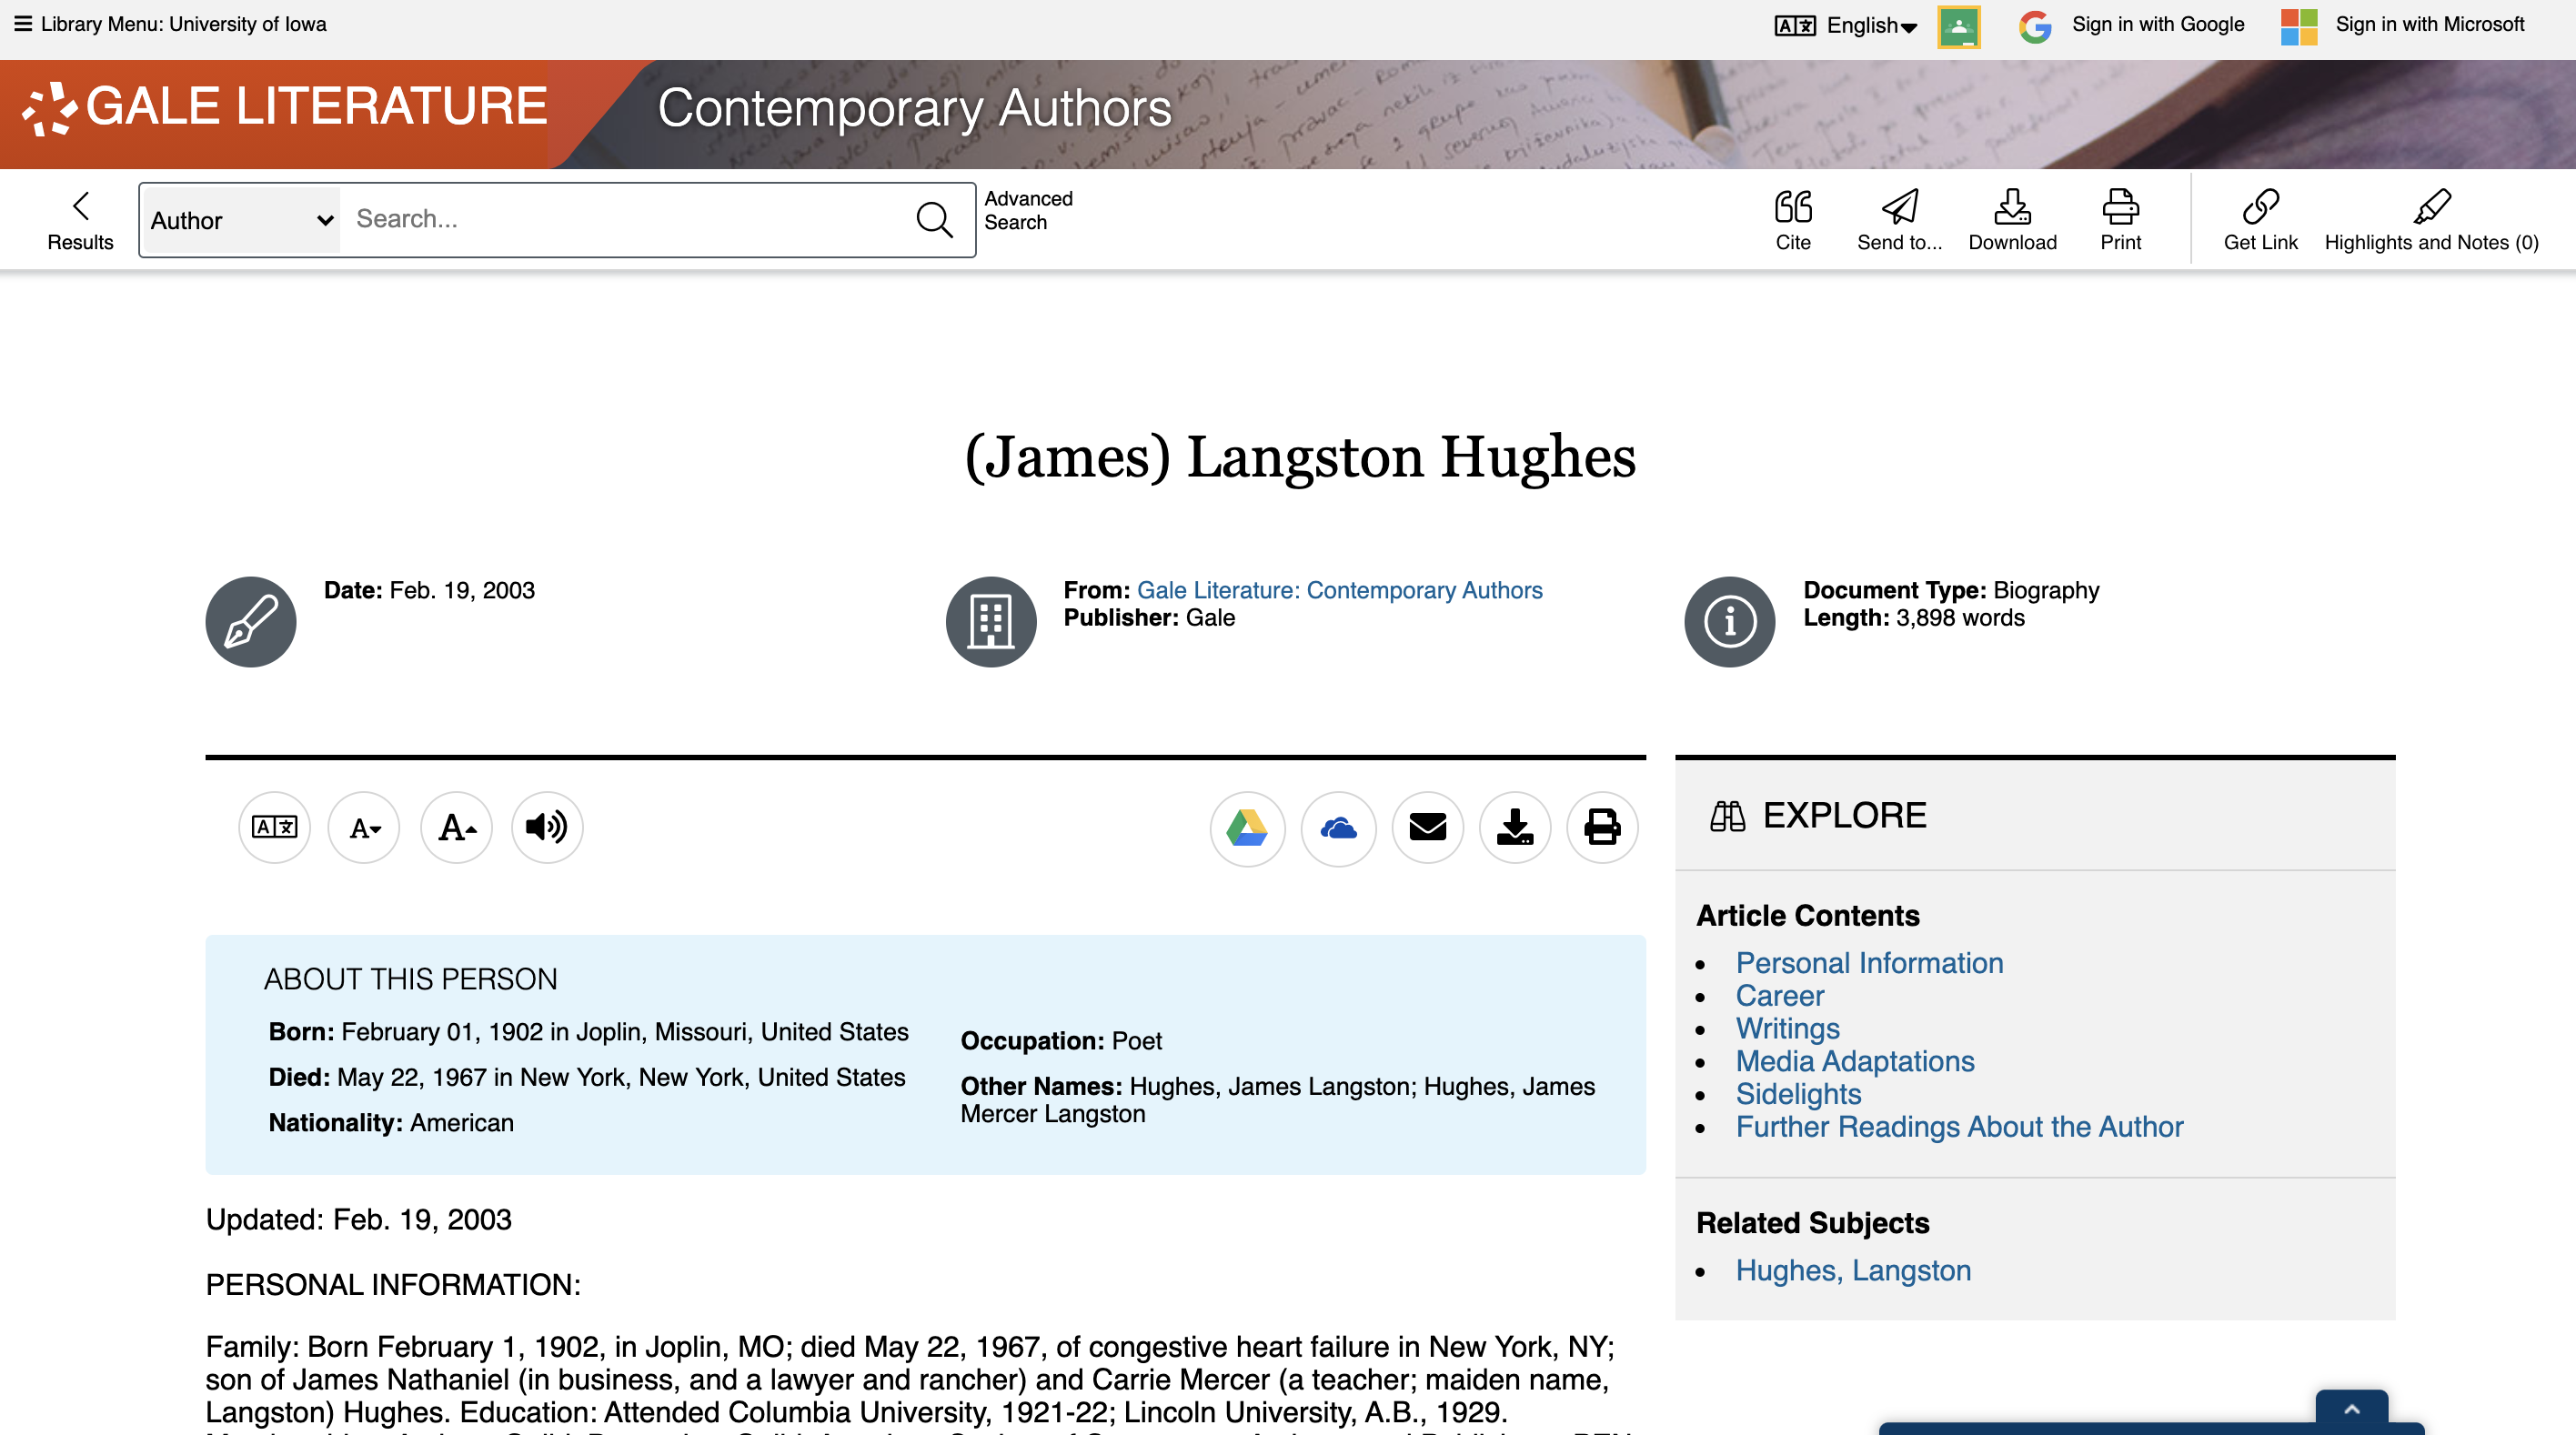 Screenshot of Contemporary Authors search result for Langston Hughes